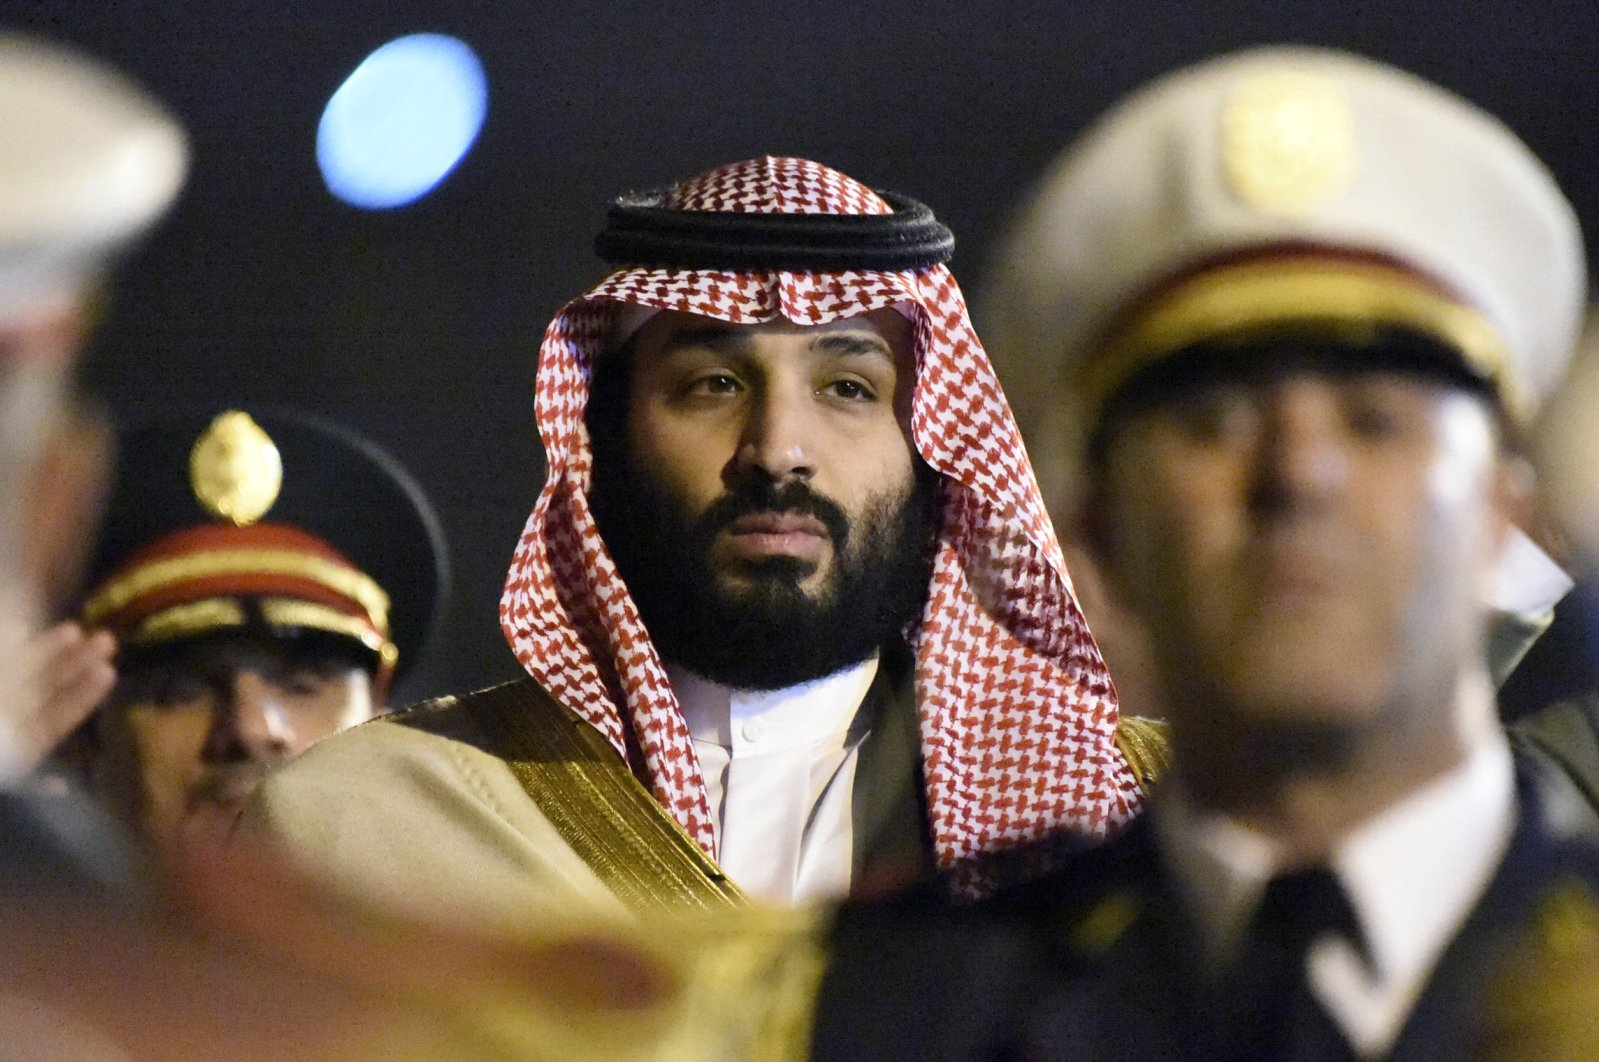 Saudi Crown Prince Mohammed Bin Salman, known for his grave human rights record, is seen behind a military band upon his arrival at Algiers International Airport, southeast of the capital Algiers on Dec. 2, 2018. (AFP Photo)